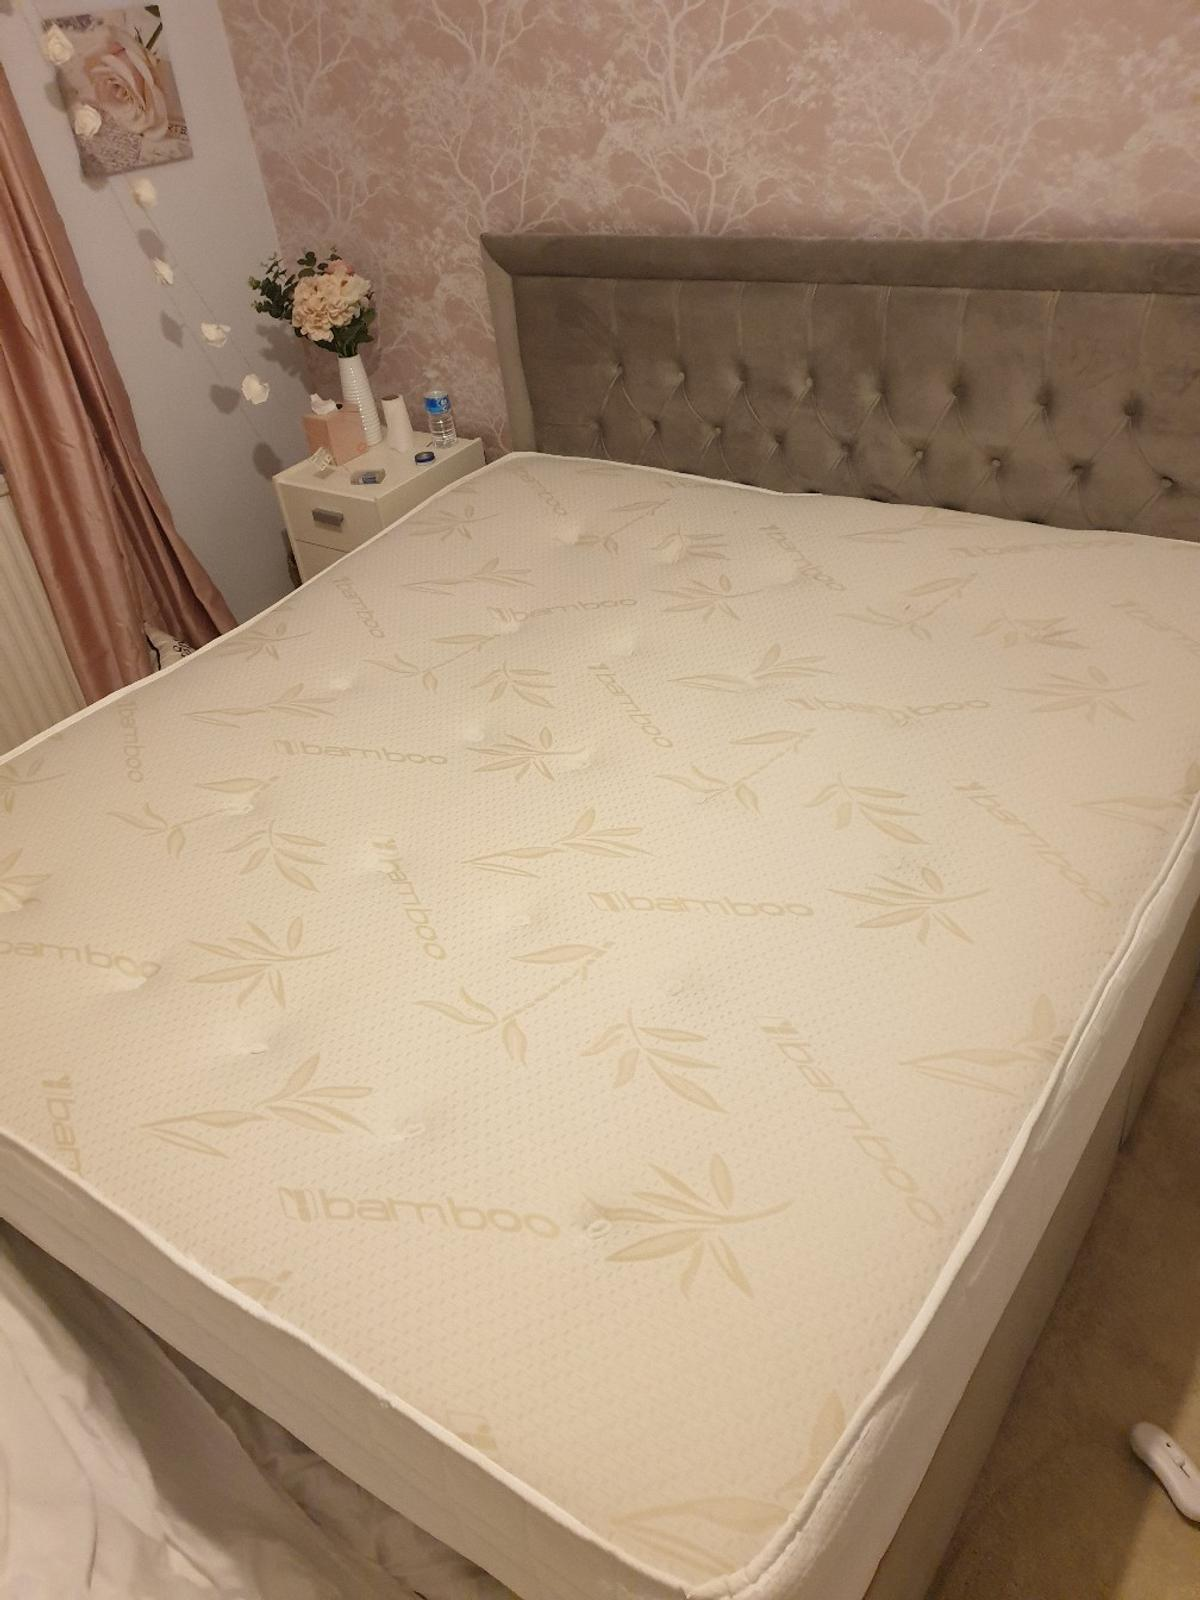 Superking mattress for sale No more than 3months old and always had a topper/protector on. Only selling due to upgrading in the January sales! Smoke & Pet free home, no rips, tears or marks at all.  Collect from Chorley town centre. No delivery.